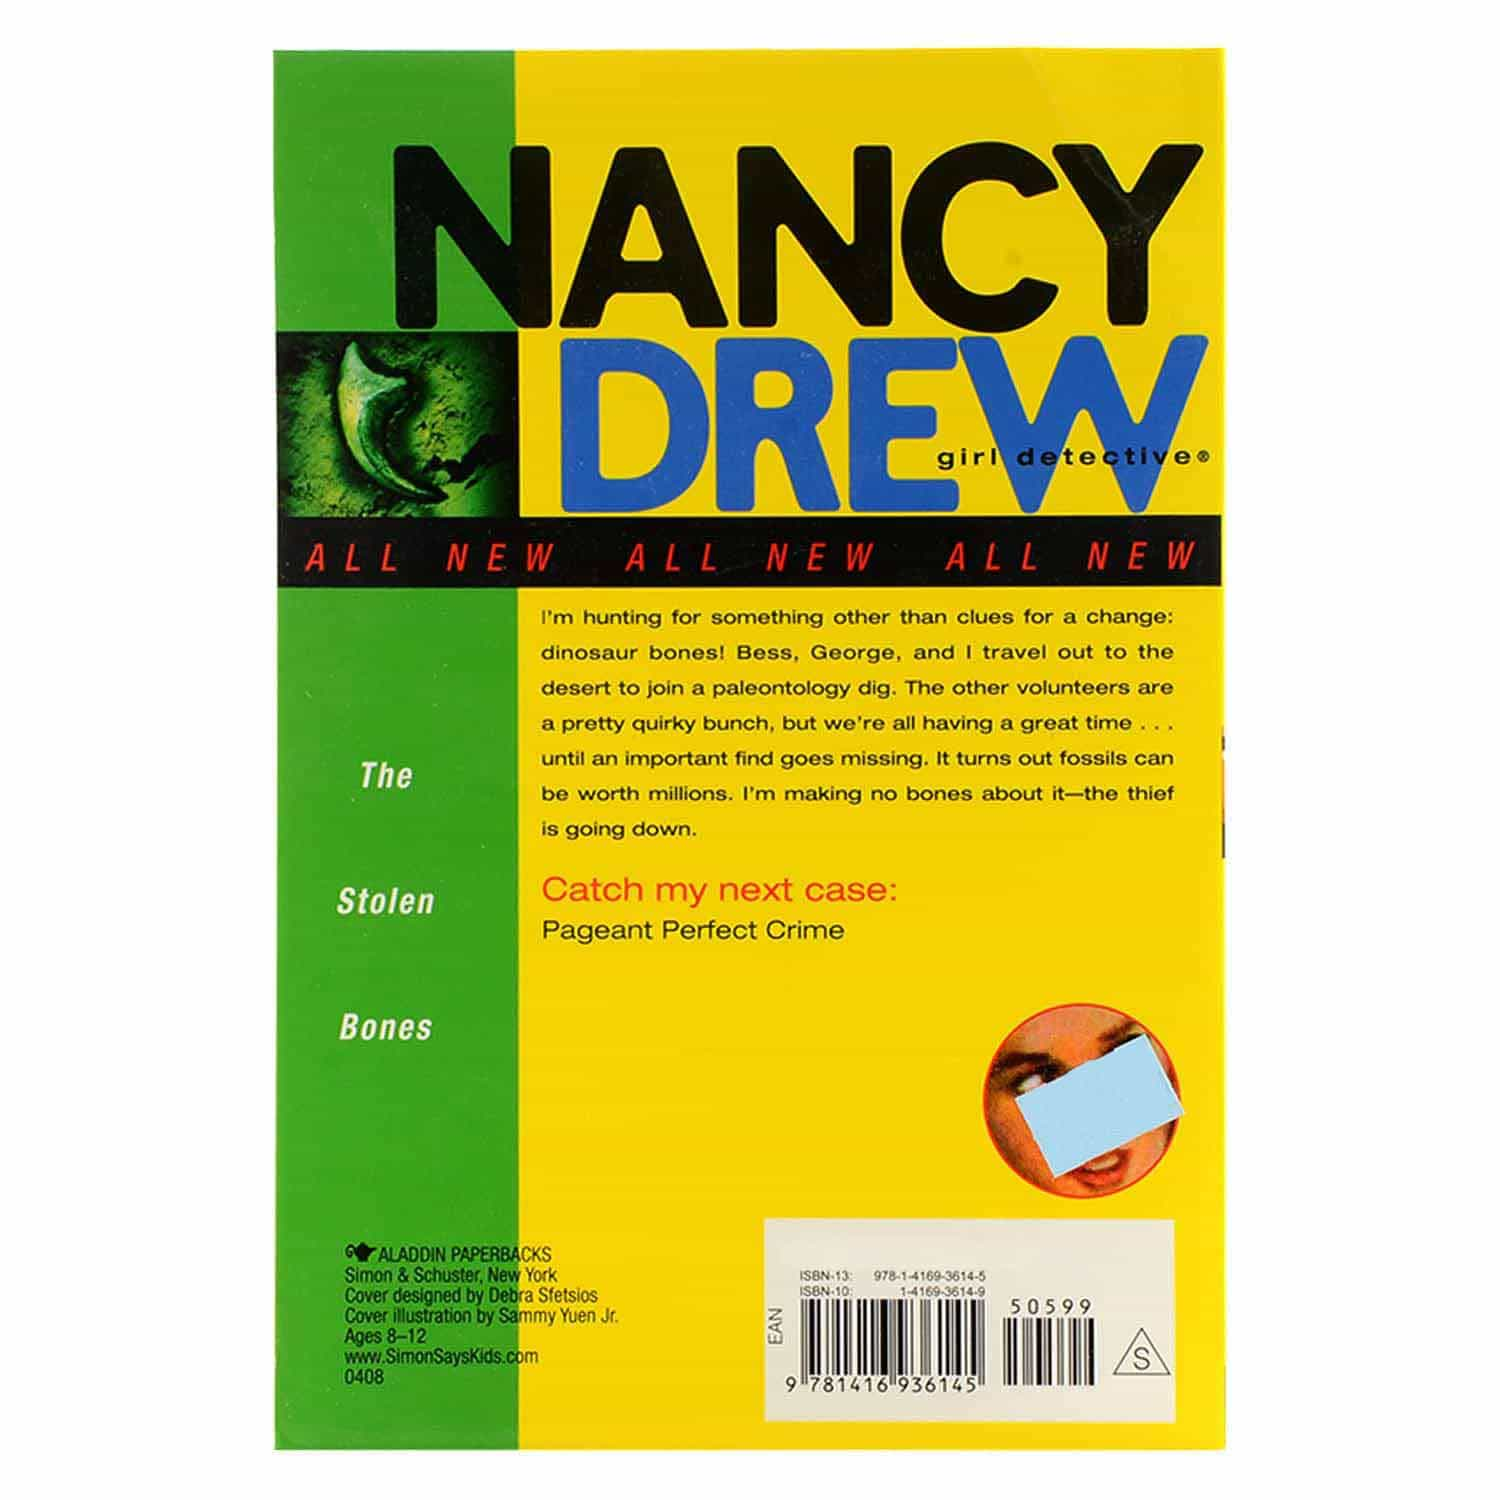 Nancy Drew Series - Once Upon a Thriller